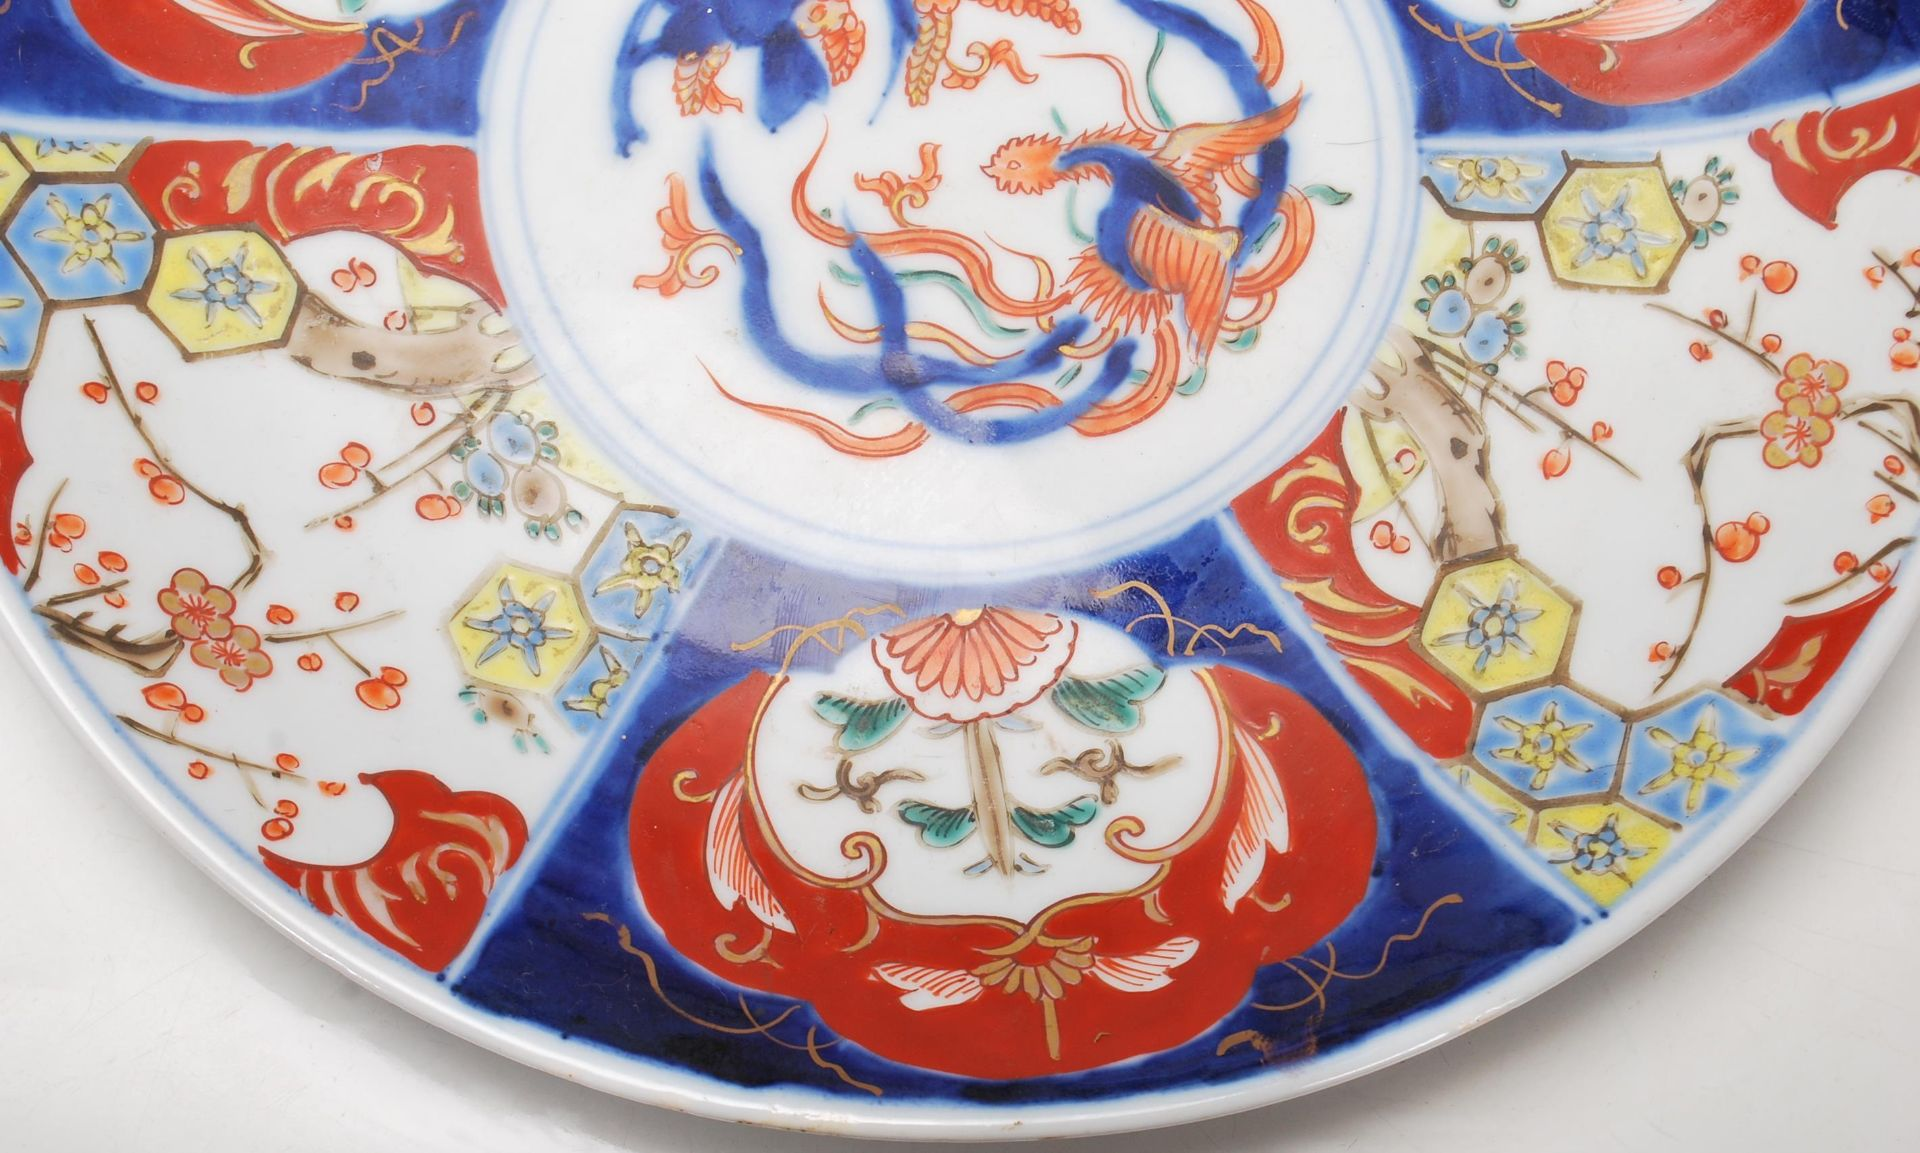 TWO 19TH CETURY 20TH CETURY CHINESE ORIENTAL CHARGERS - Image 5 of 7